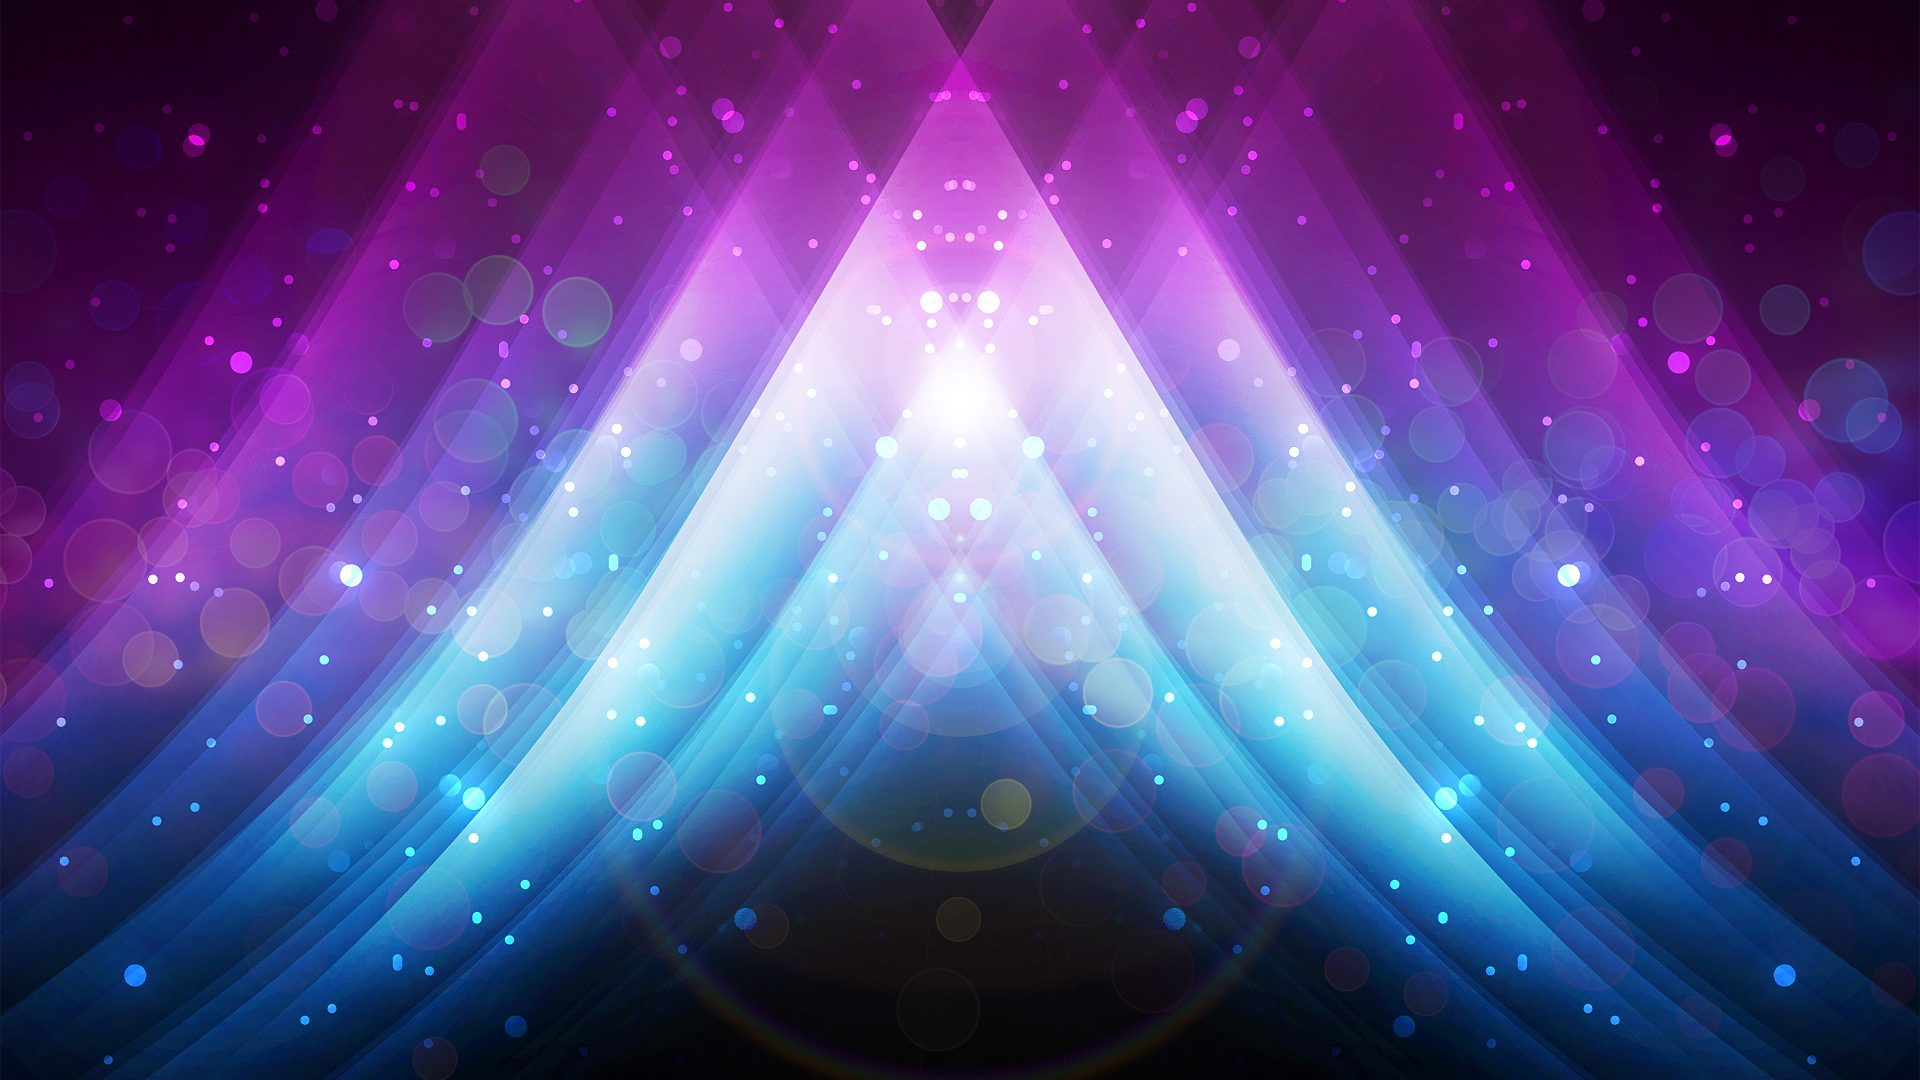 Beautiful Abstract Images Wallpaper 1920x1080 Dave S World